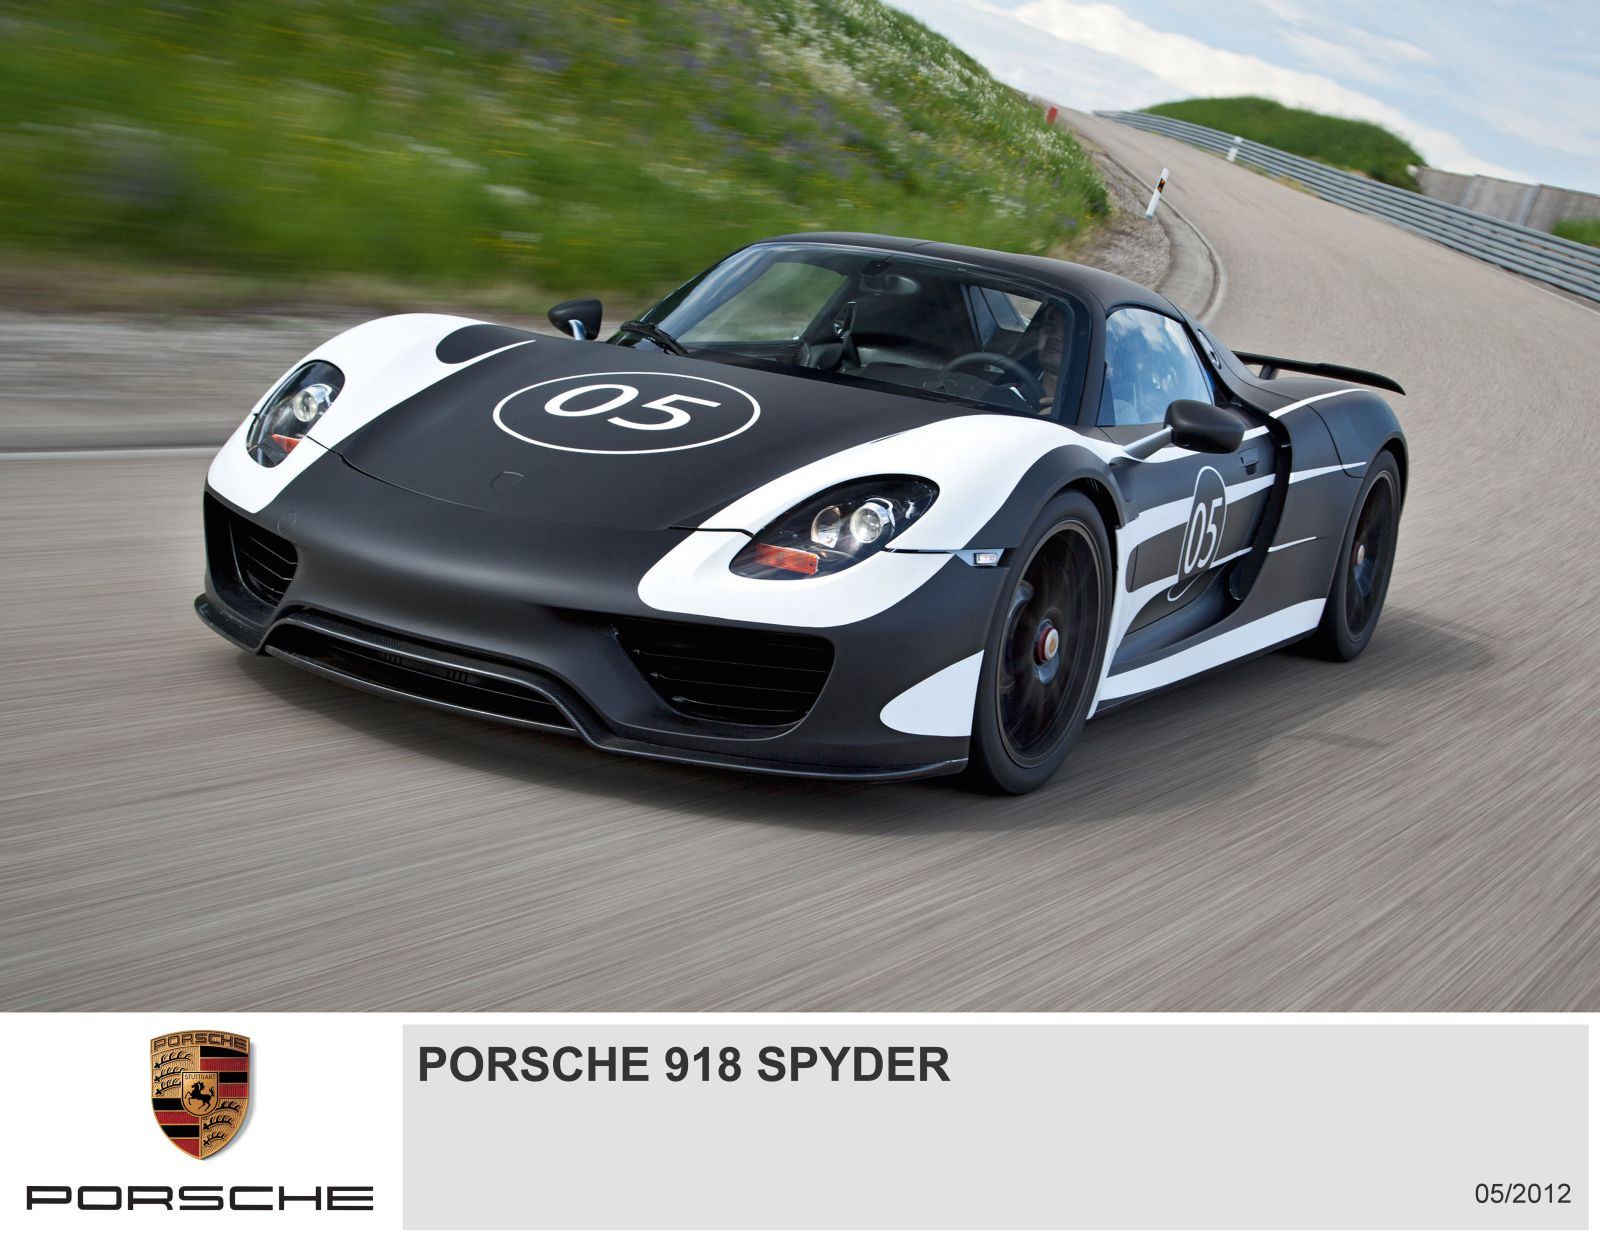 porsche 918 hybrid spyder specs. Black Bedroom Furniture Sets. Home Design Ideas